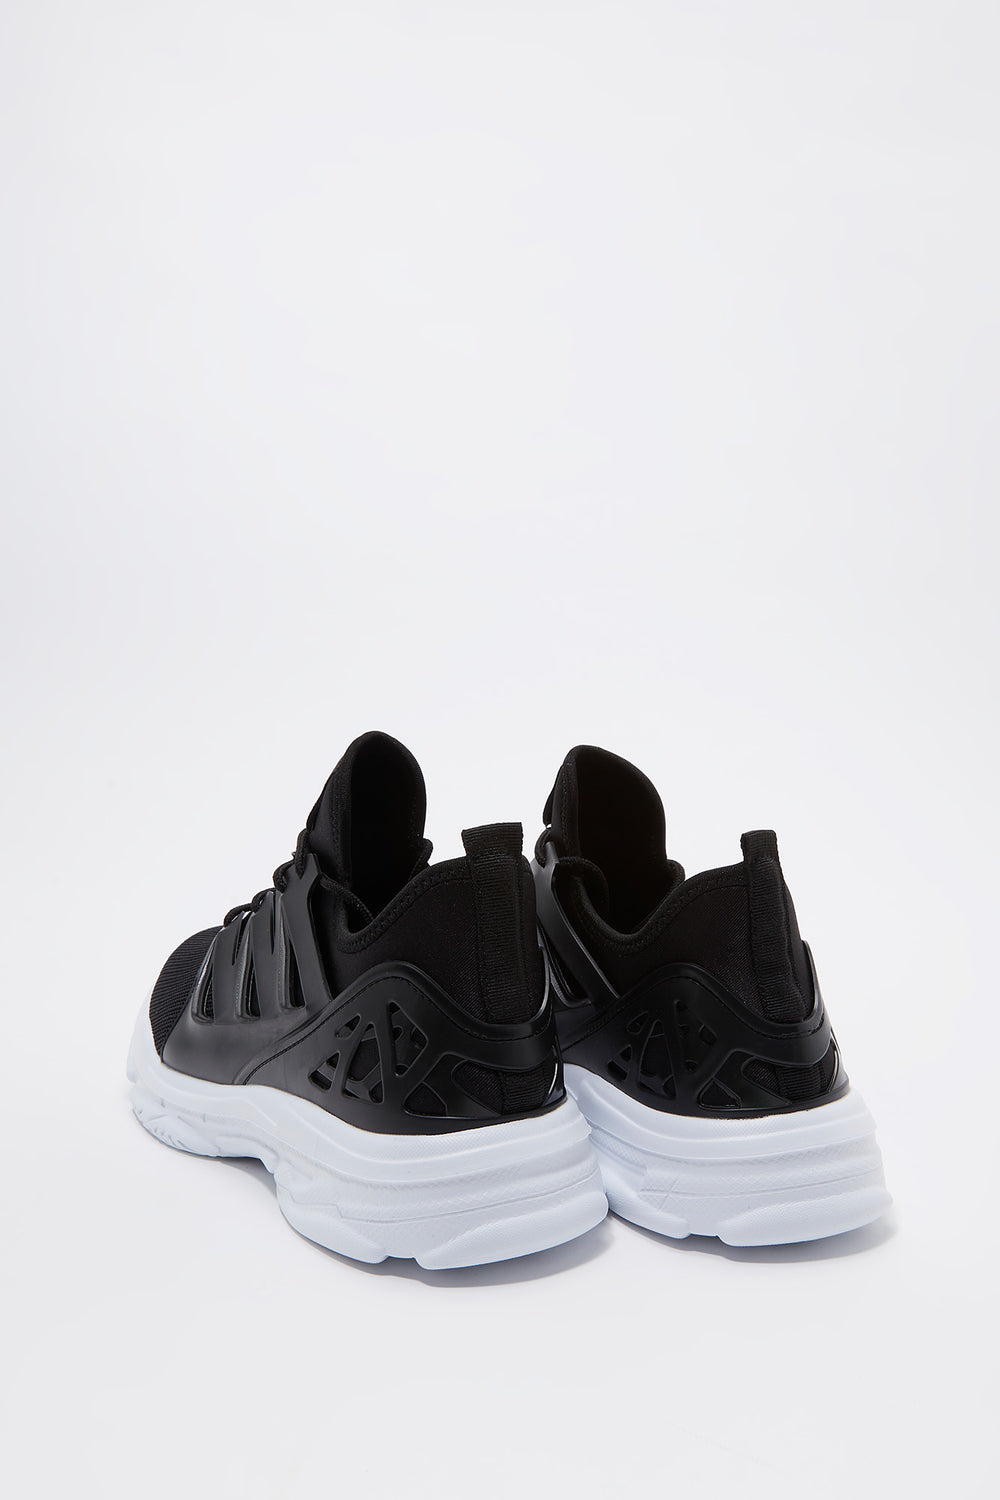 Knit Caged Athletic Sneaker Black with White